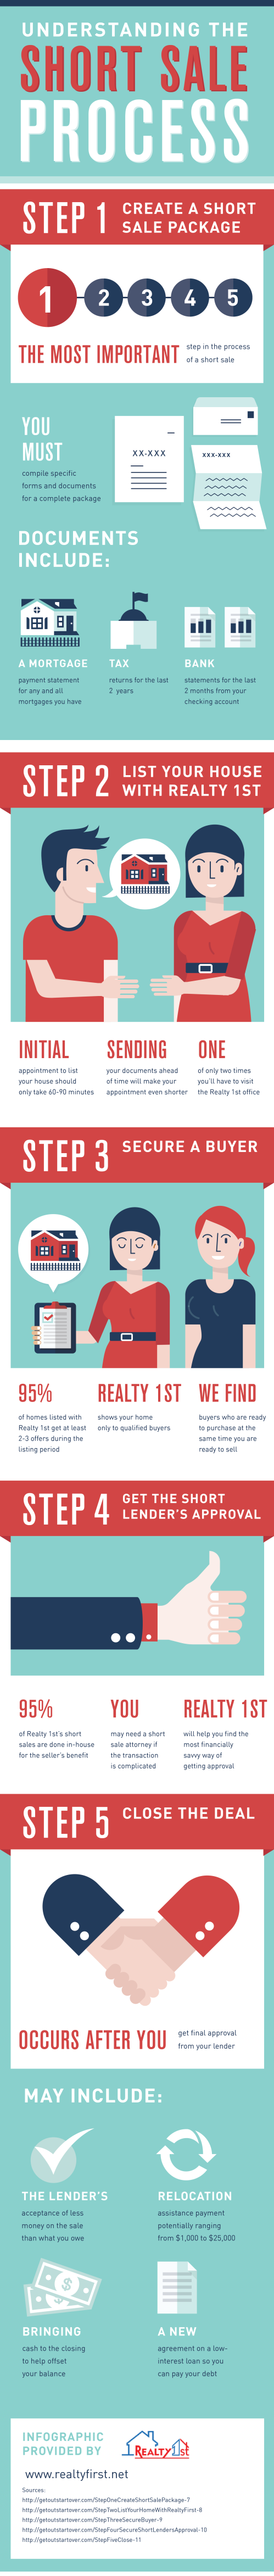 Understanding The Short Sale Process Realestate Infographic